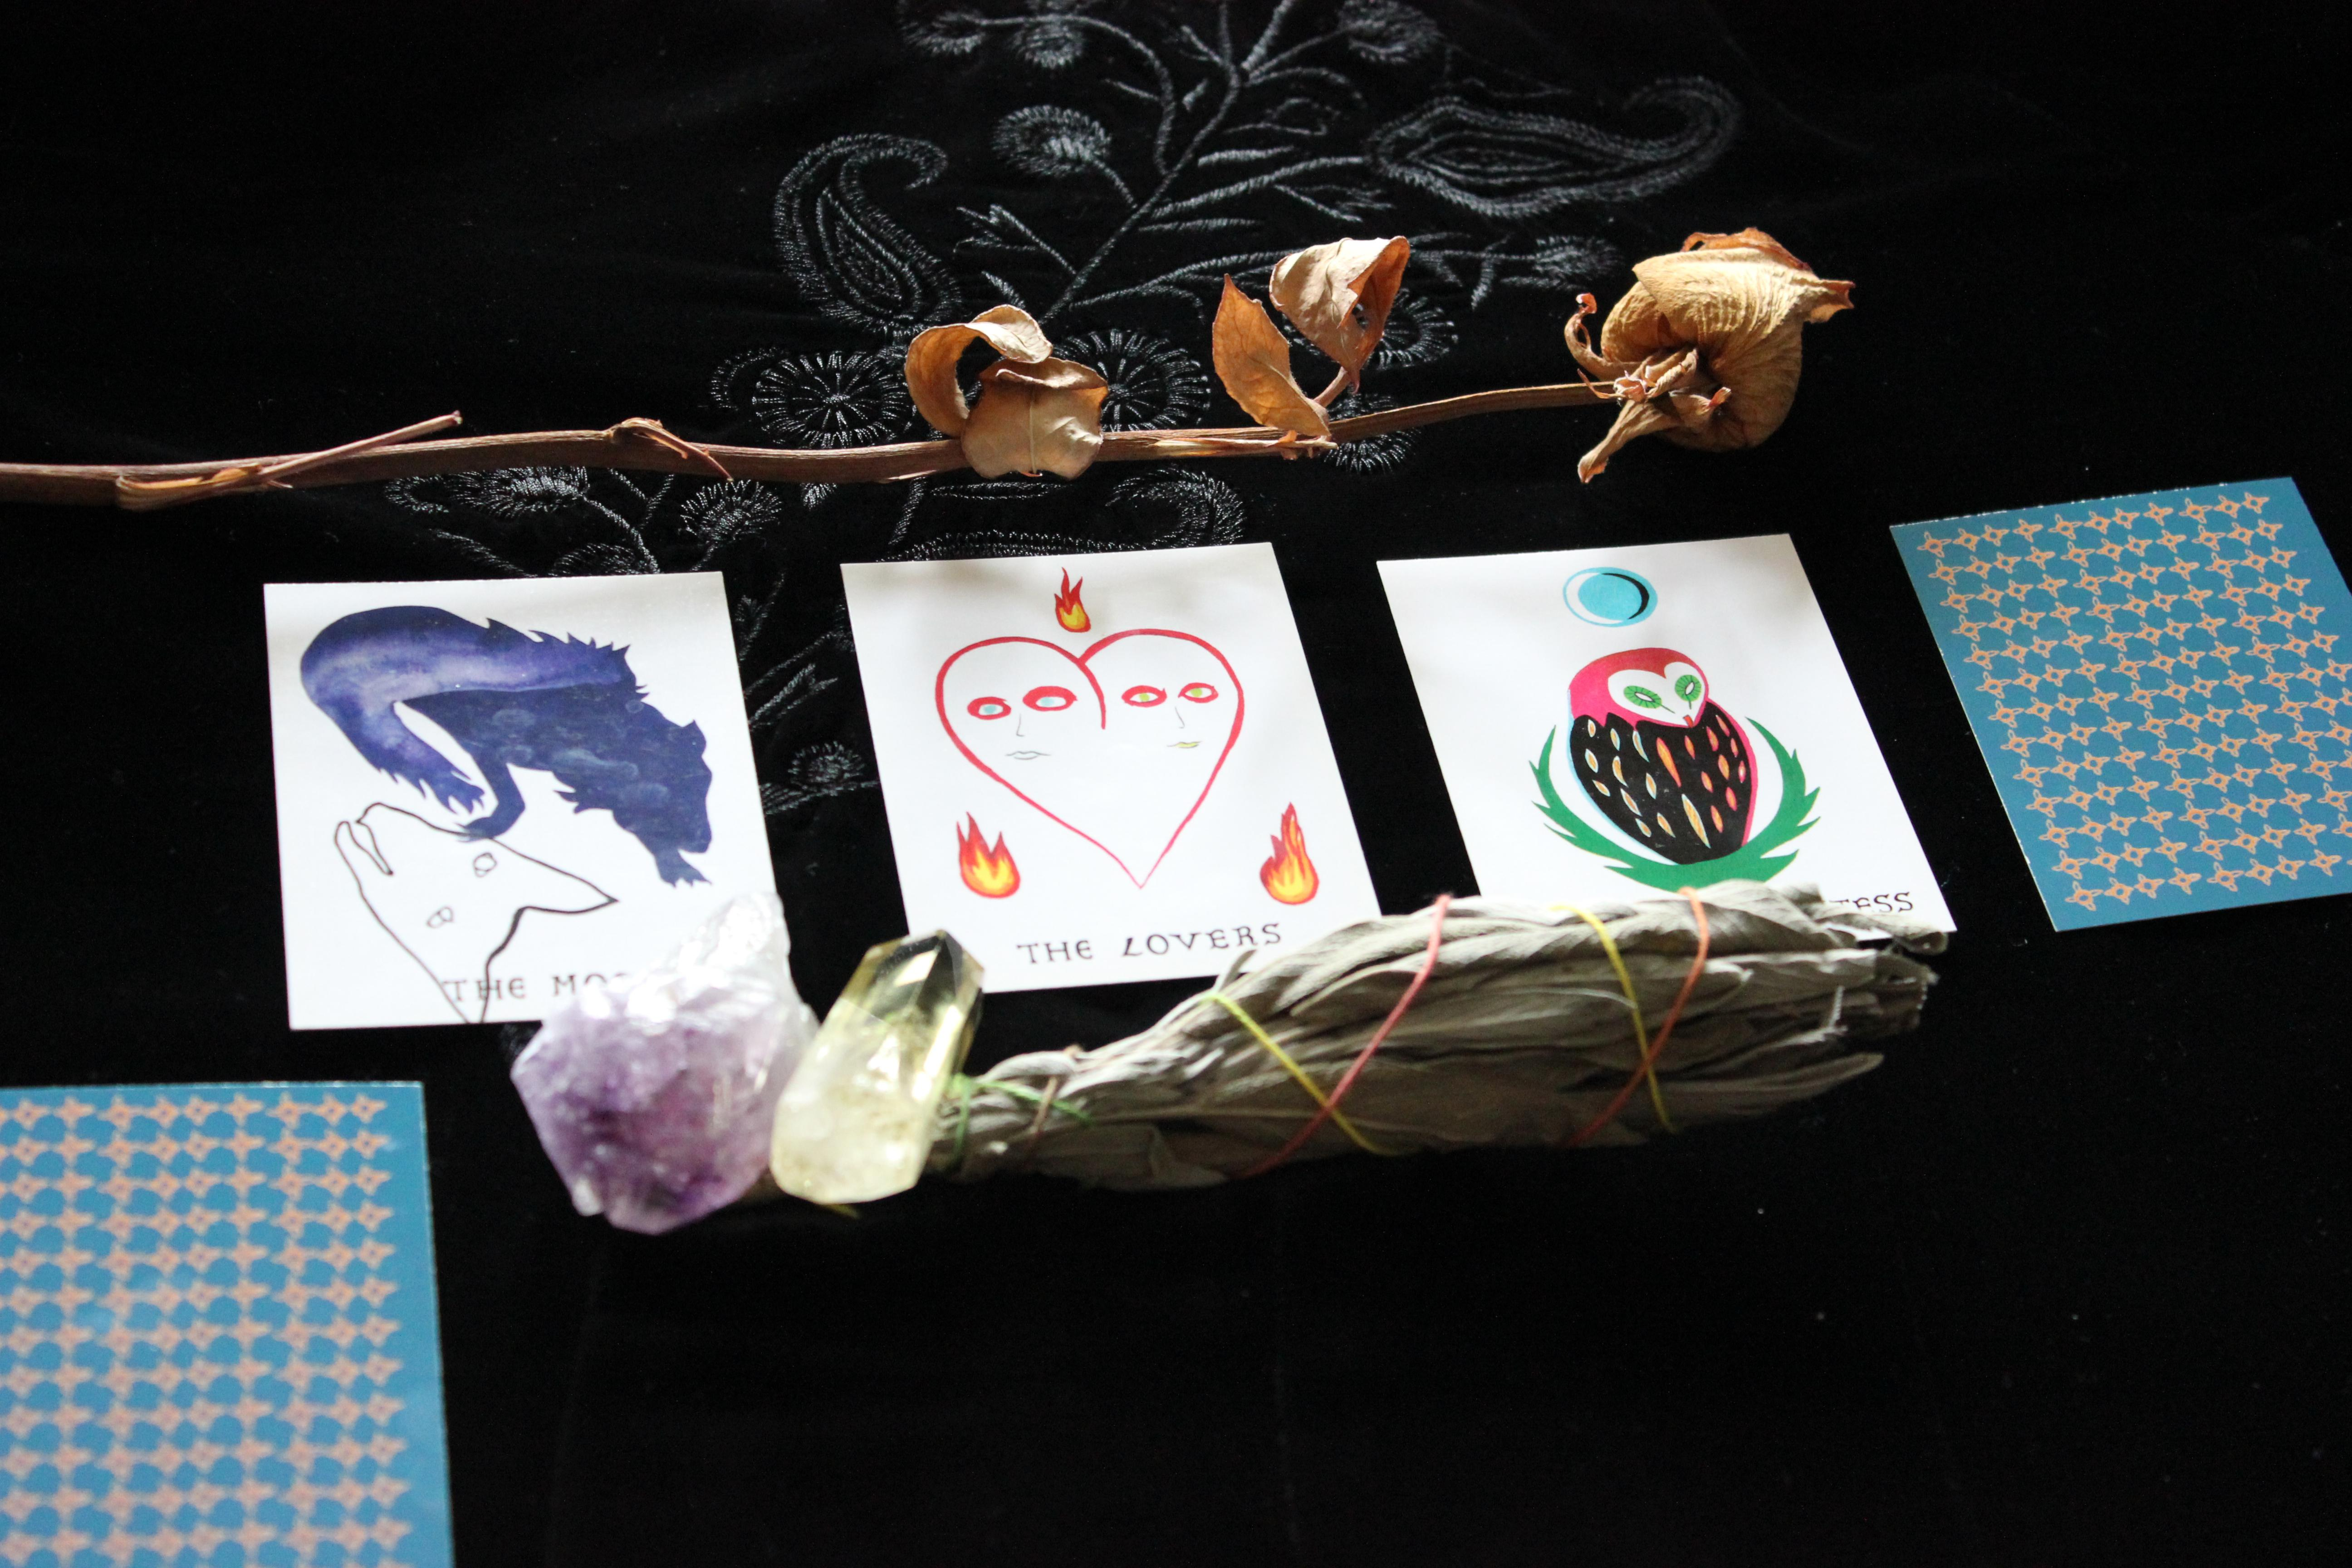 Four tarot cards are placed in a row on an embroidered black tablecloth. Three of the four cards reveal an image. A dried rose frames the top of the photo. Two crystals and a smudging stick are in the foreground. A fifth unrevealed card is cut off in the lower left corner.